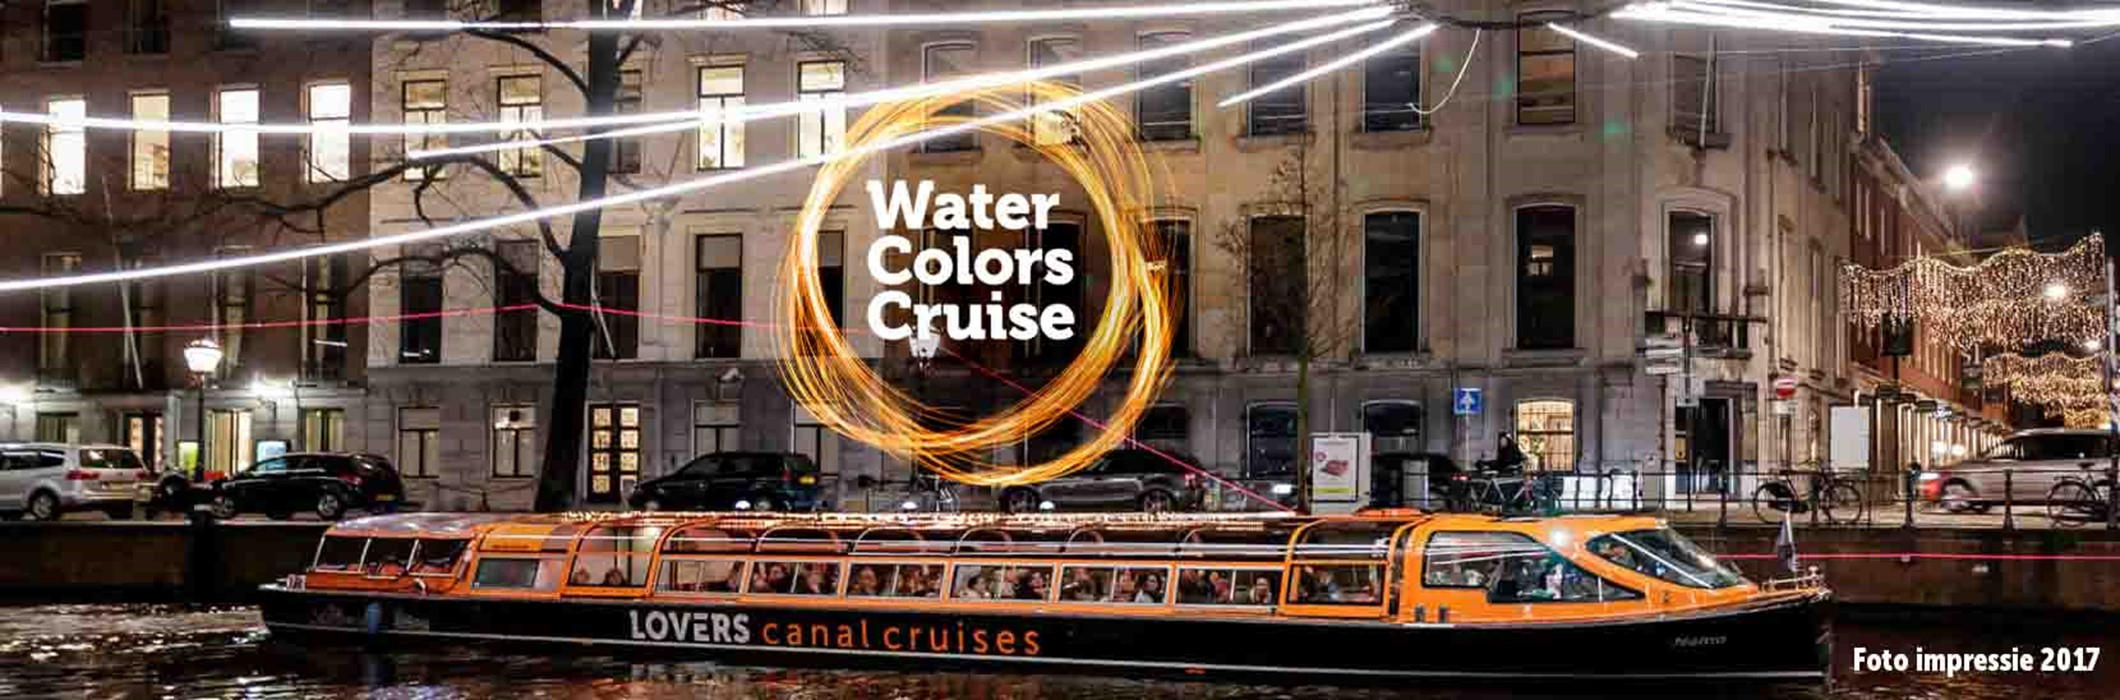 Water Colors Cruise - Anne Frank Haus